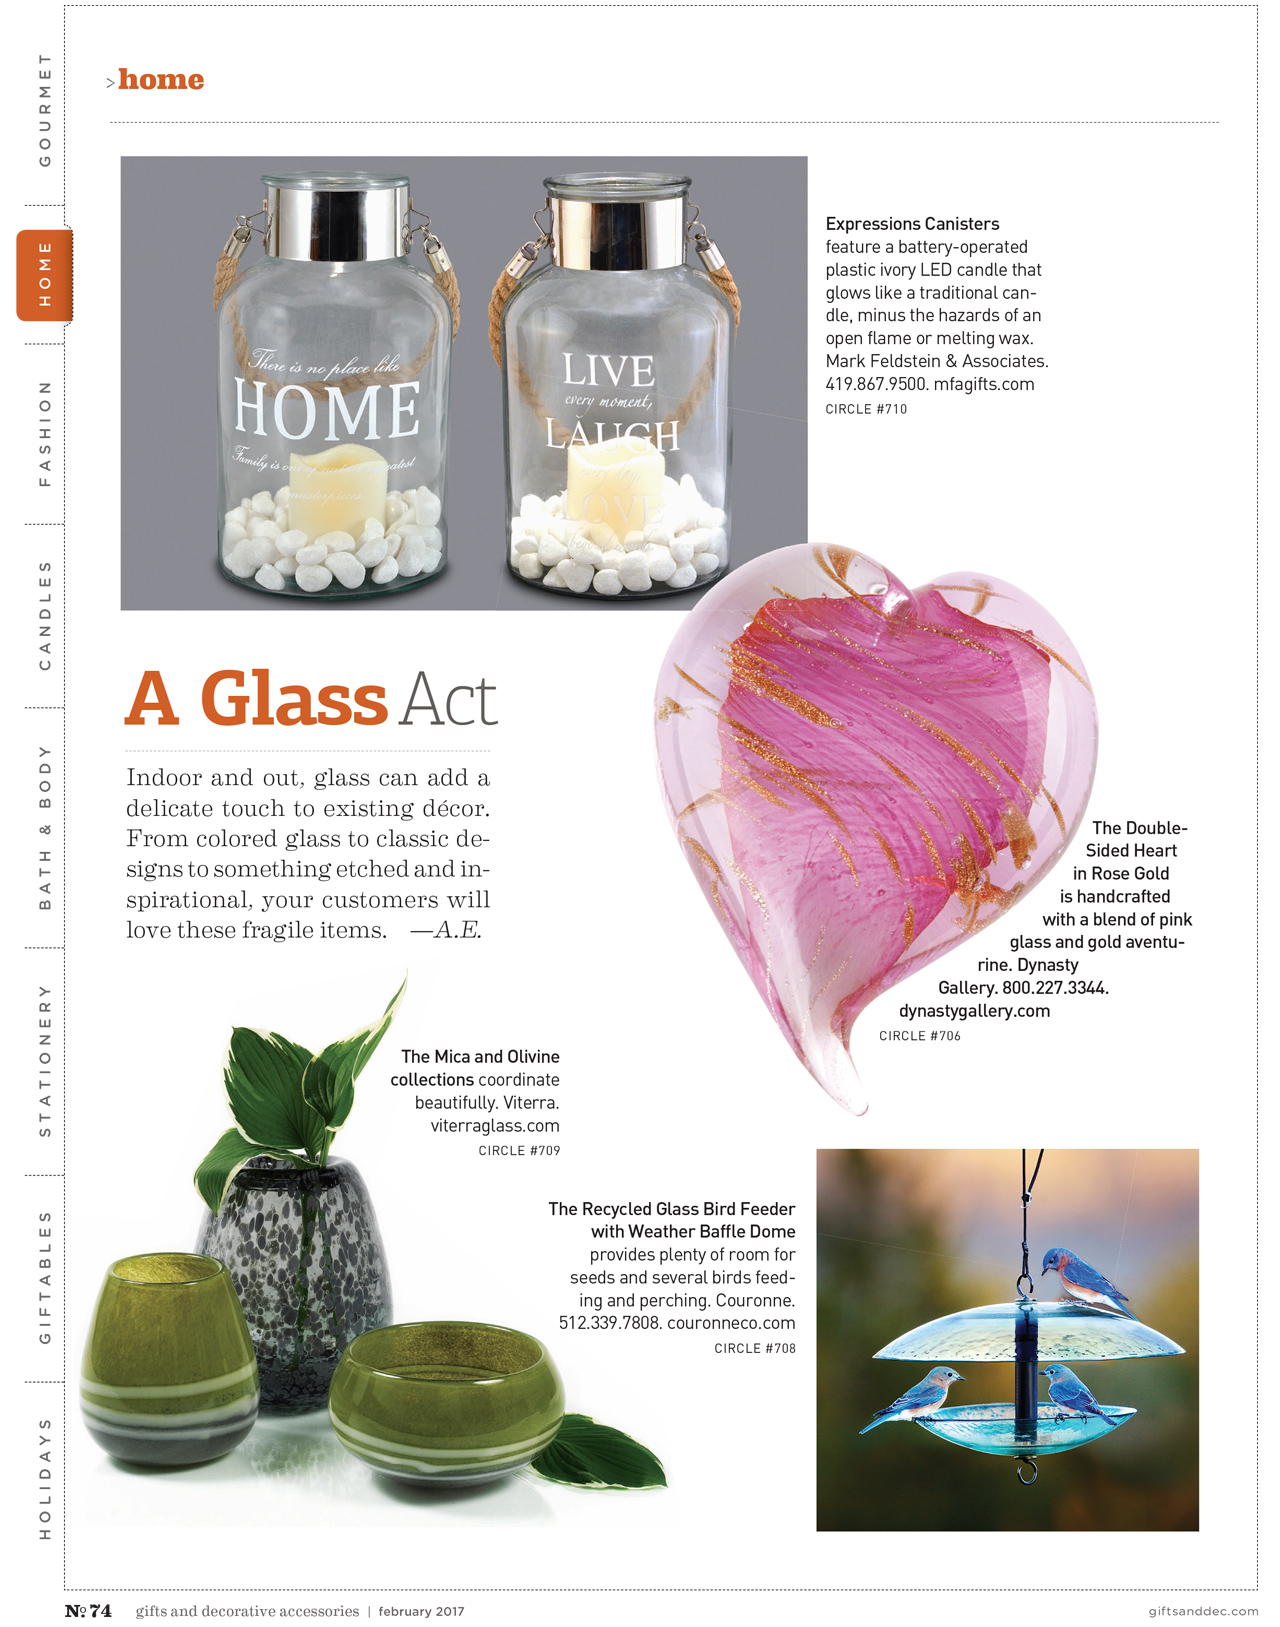 Gifts and Decorative Accessories - February 2017